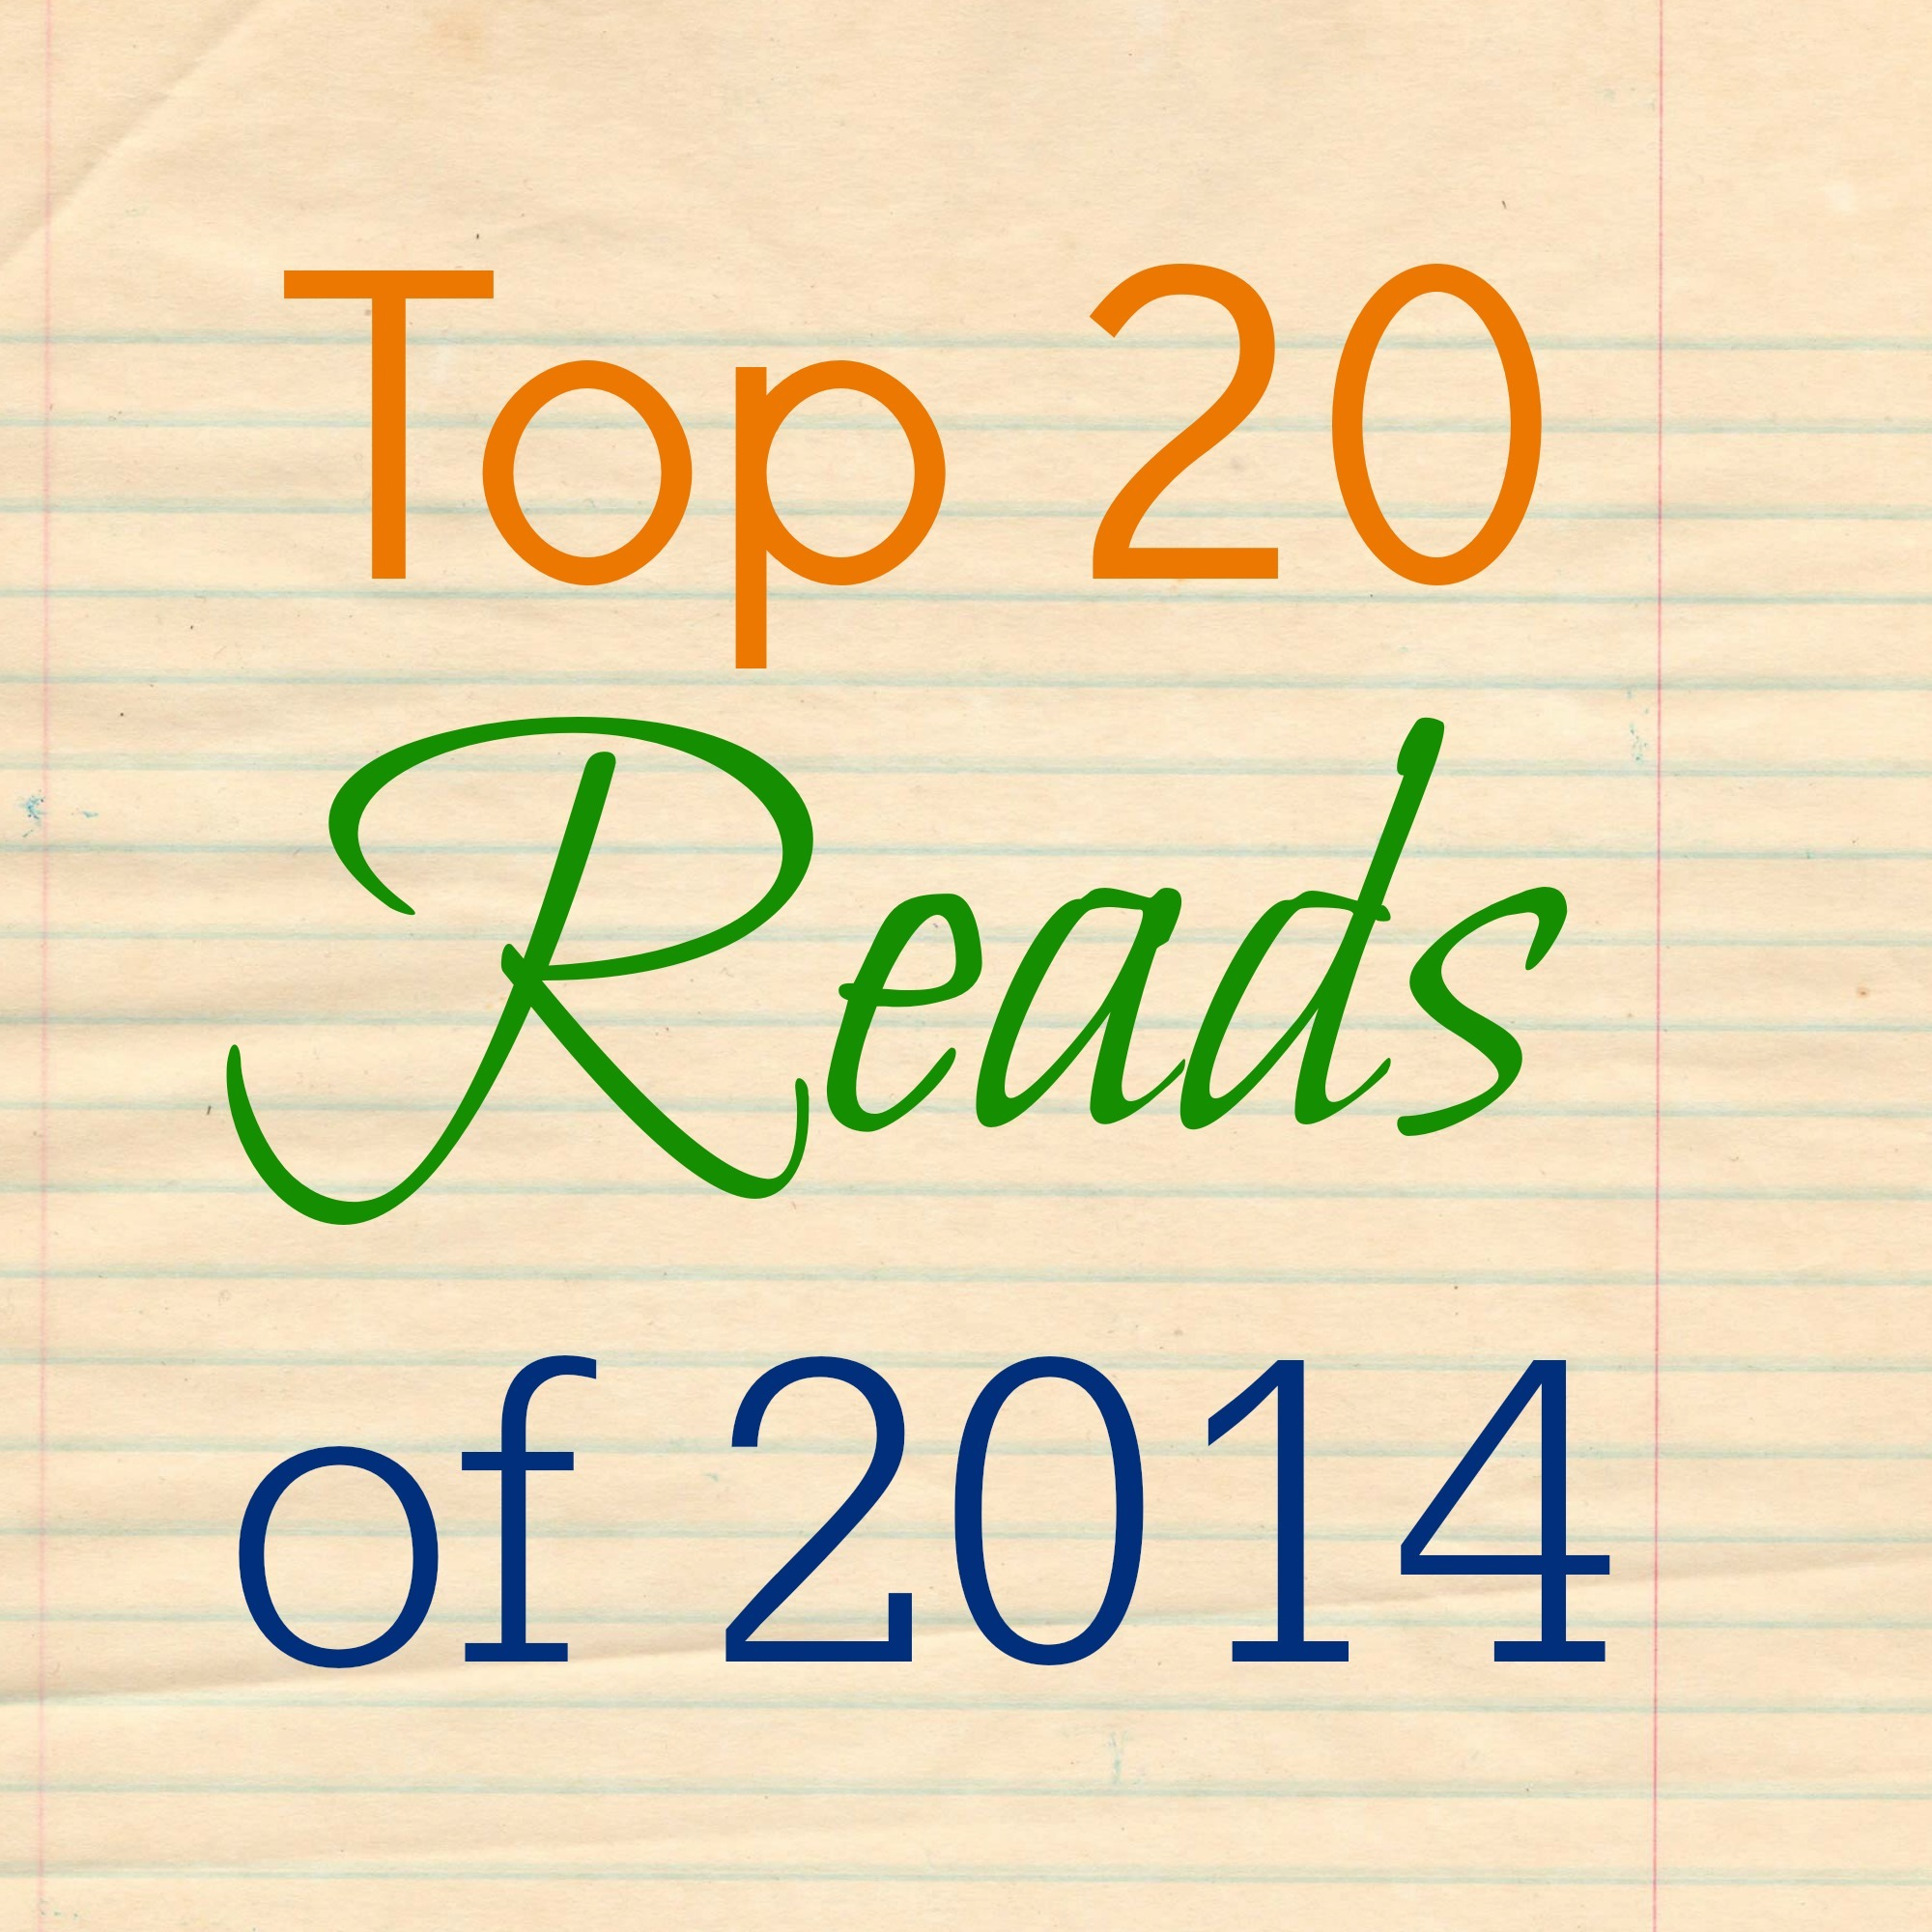 Top 20 Reads of 2014